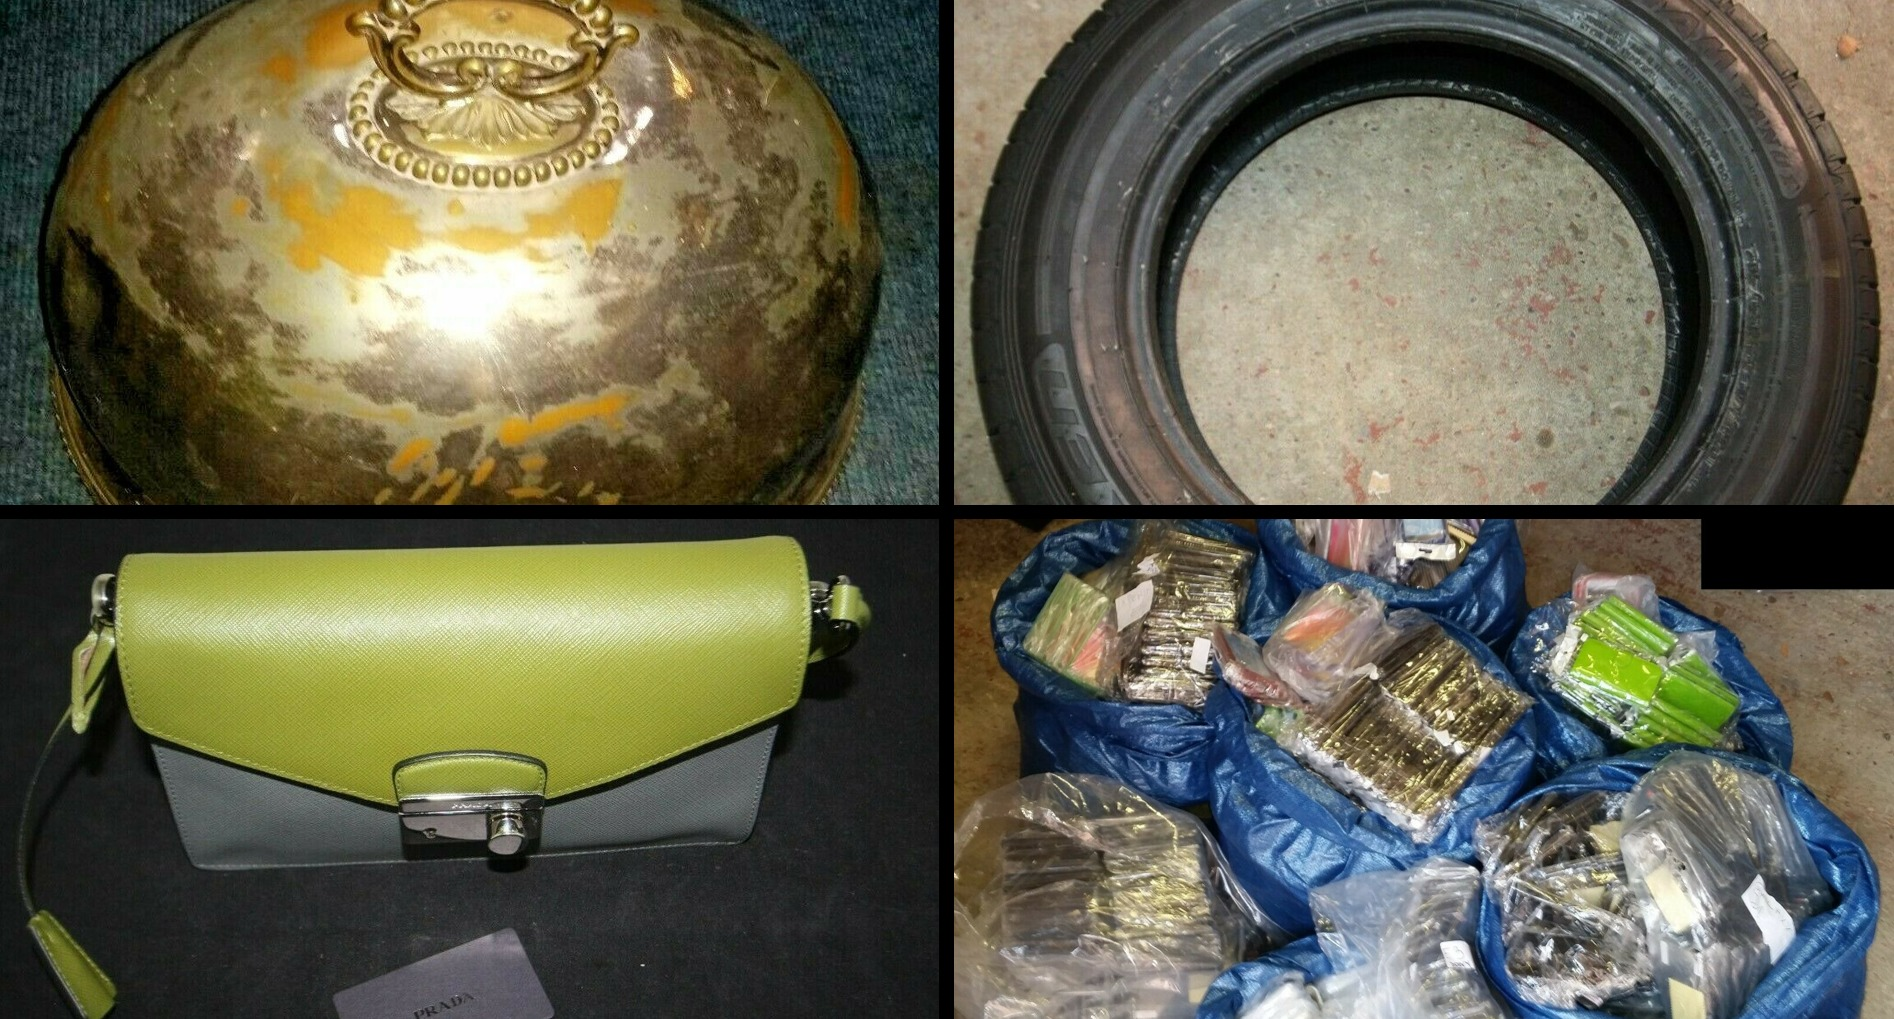 Bargains of the week on Thames Valley Police eBay page